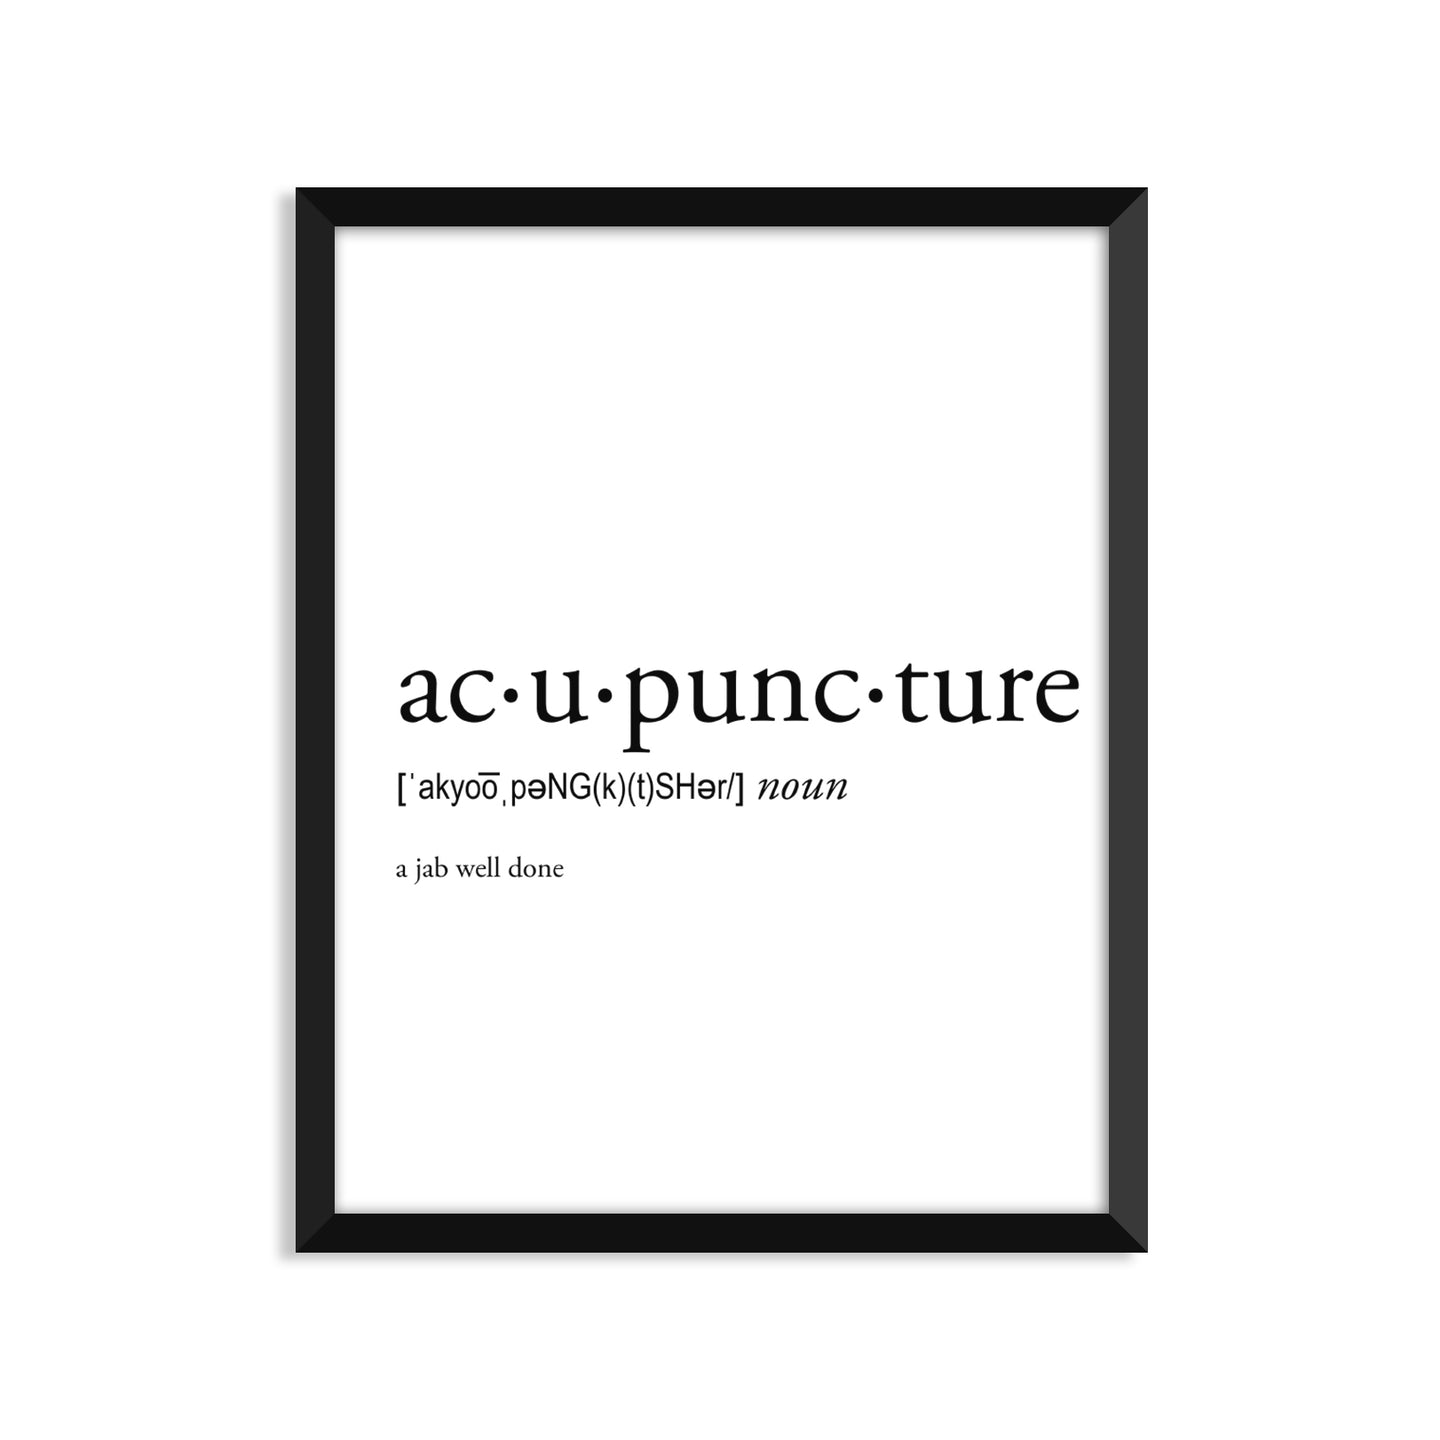 Acupuncture definition art print or greeting card